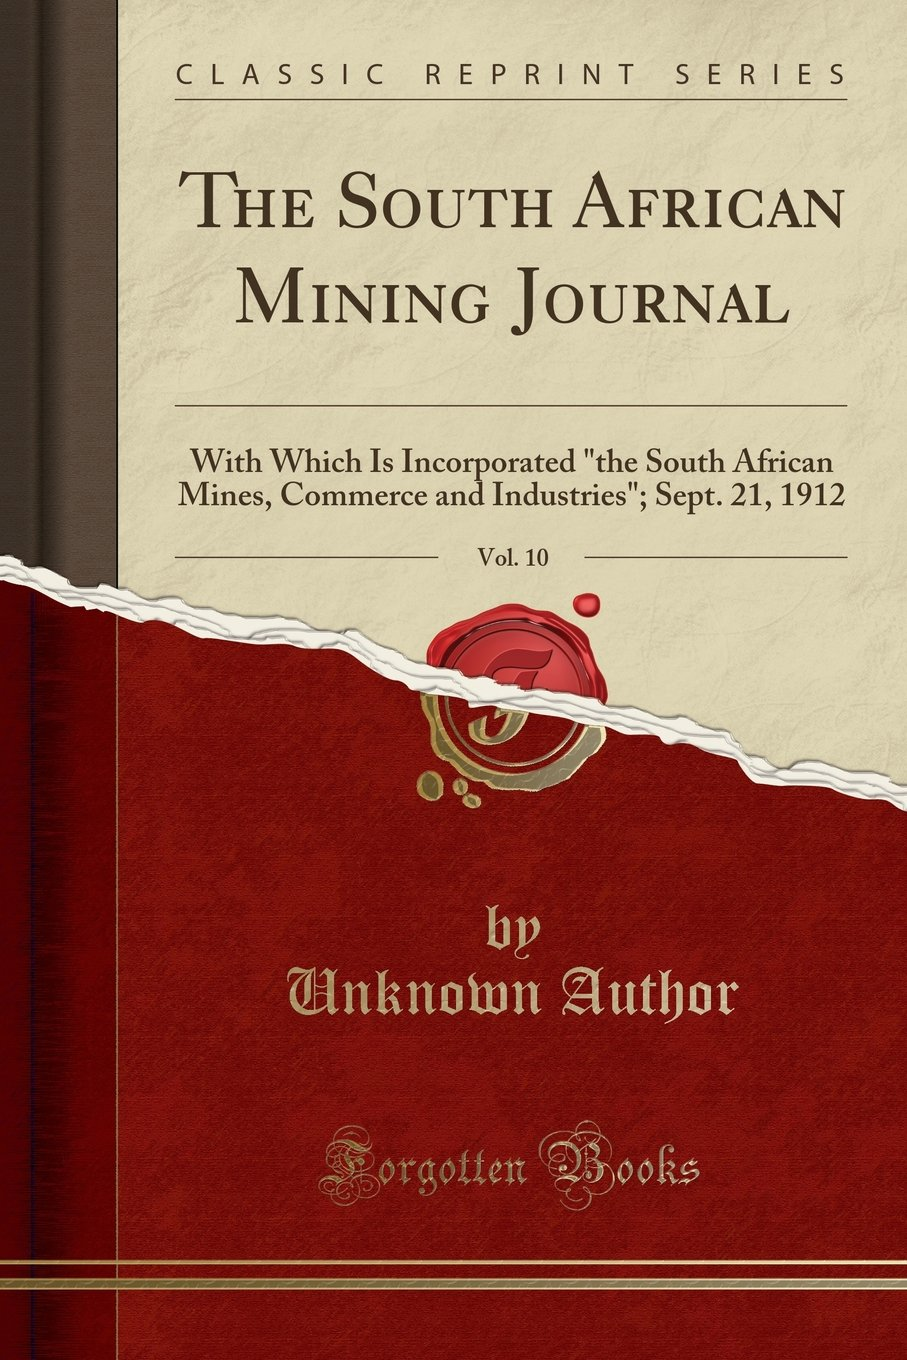 """Download The South African Mining Journal, Vol. 10: With Which Is Incorporated """"the South African Mines, Commerce and Industries""""; Sept. 21, 1912 (Classic Reprint) ebook"""